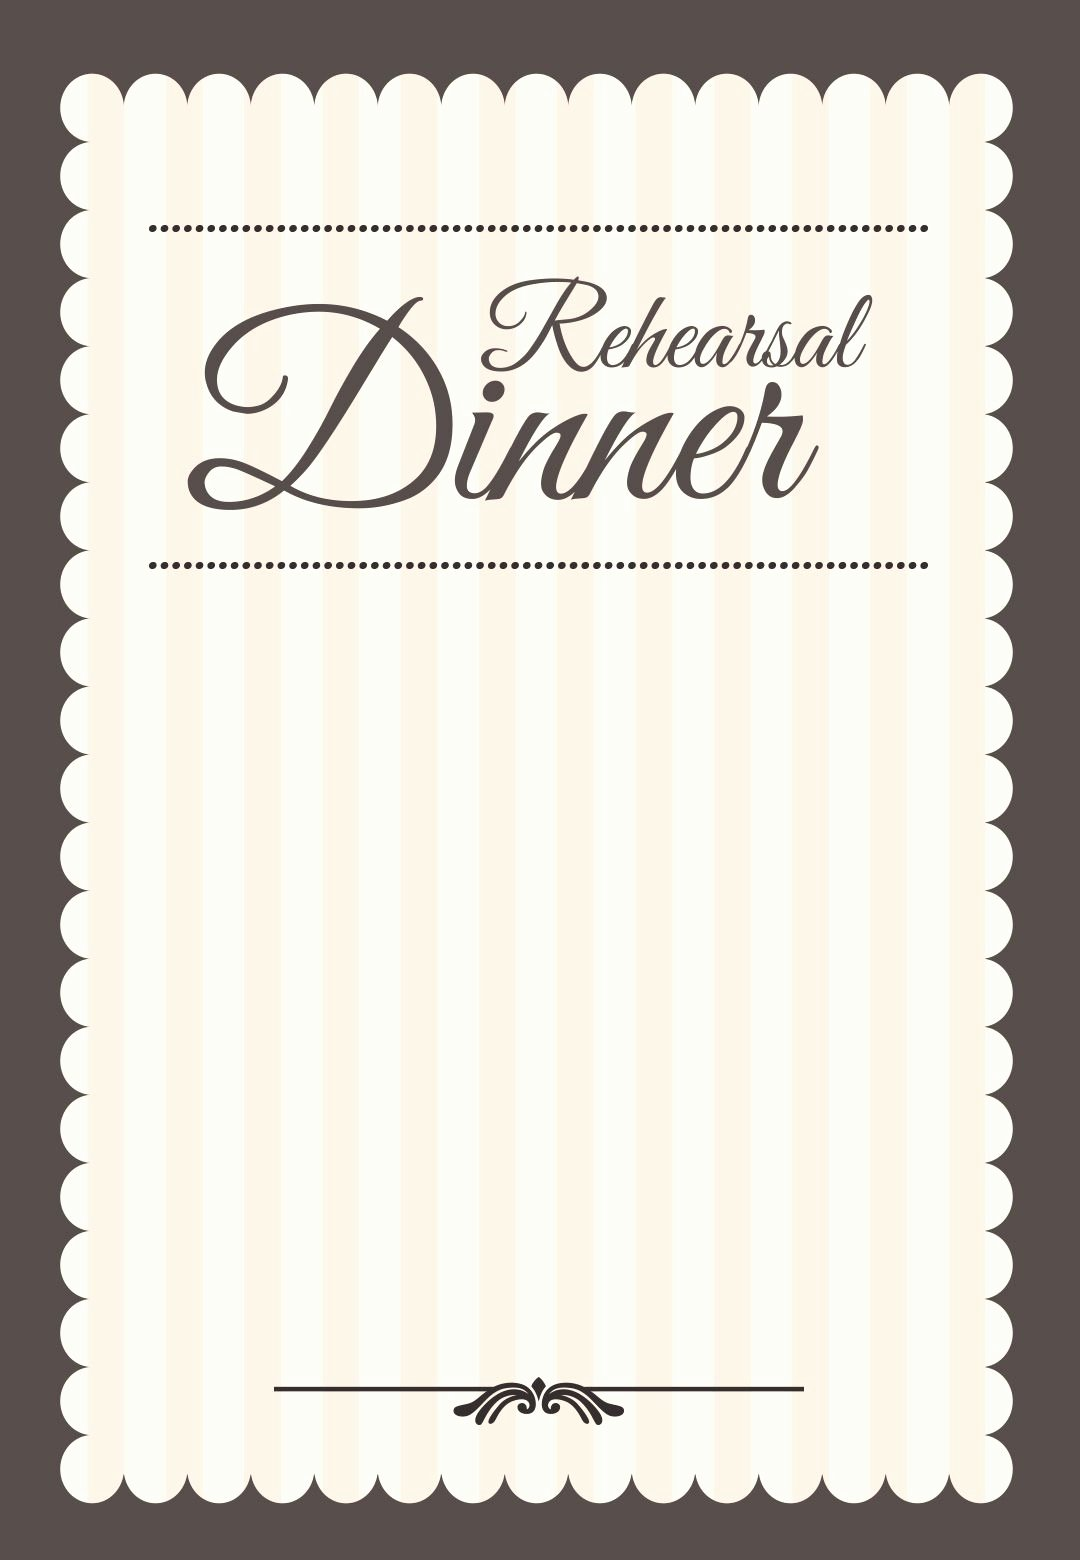 Wedding Rehearsal Dinner Invitation Template Elegant Stamped Rehearsal Dinner Free Printable Rehearsal Dinner